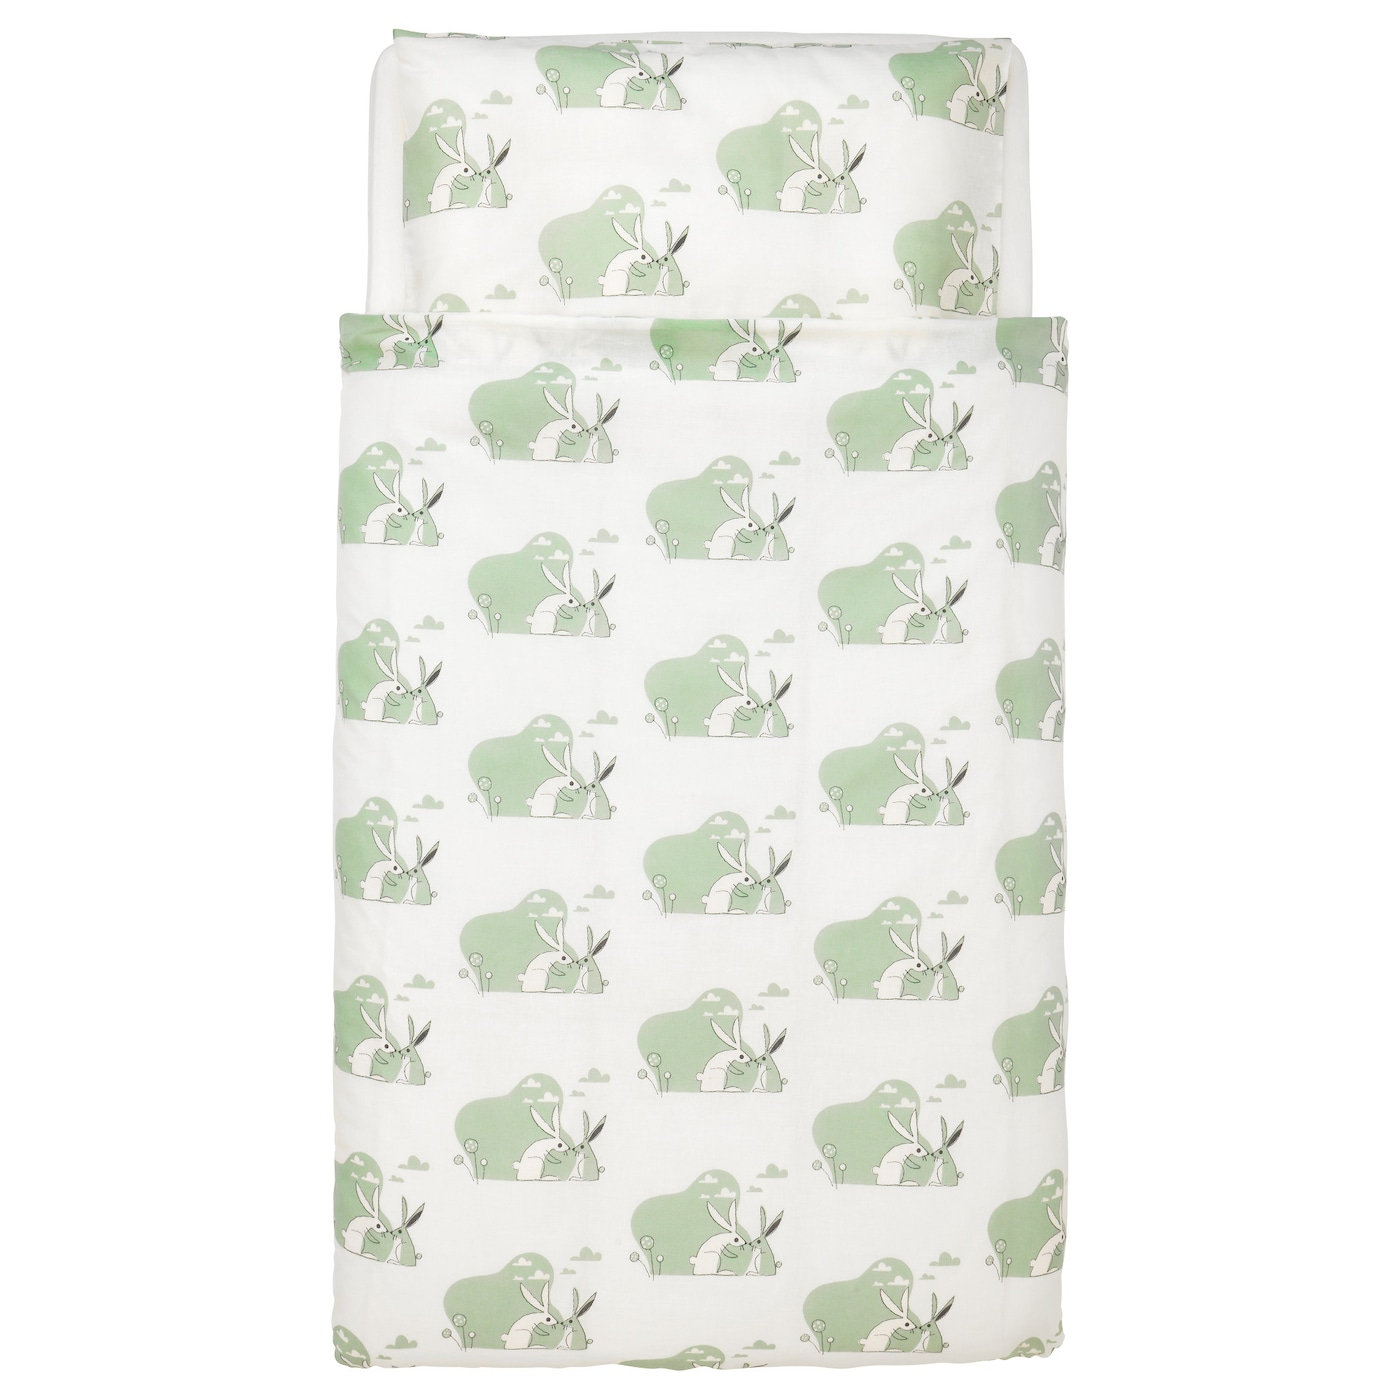 IKEA BUSSIG quilt cover/pillowcase for cot Easy to keep clean; machine wash hot (60°C).